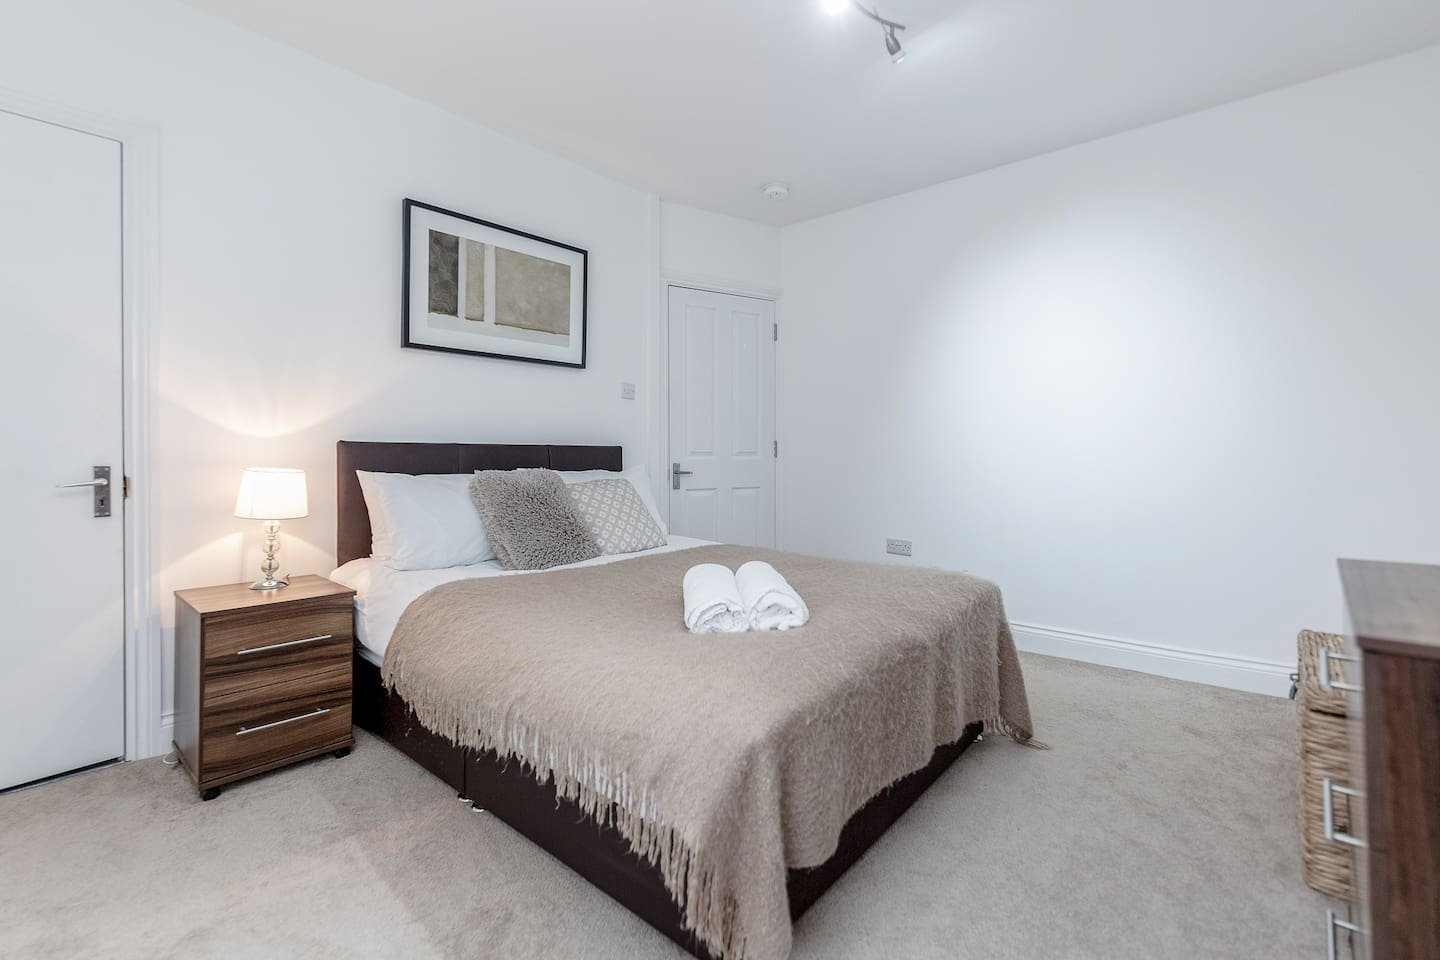 Beautiful, modern two bedroom apartment - your home from home - decorated in natural cream